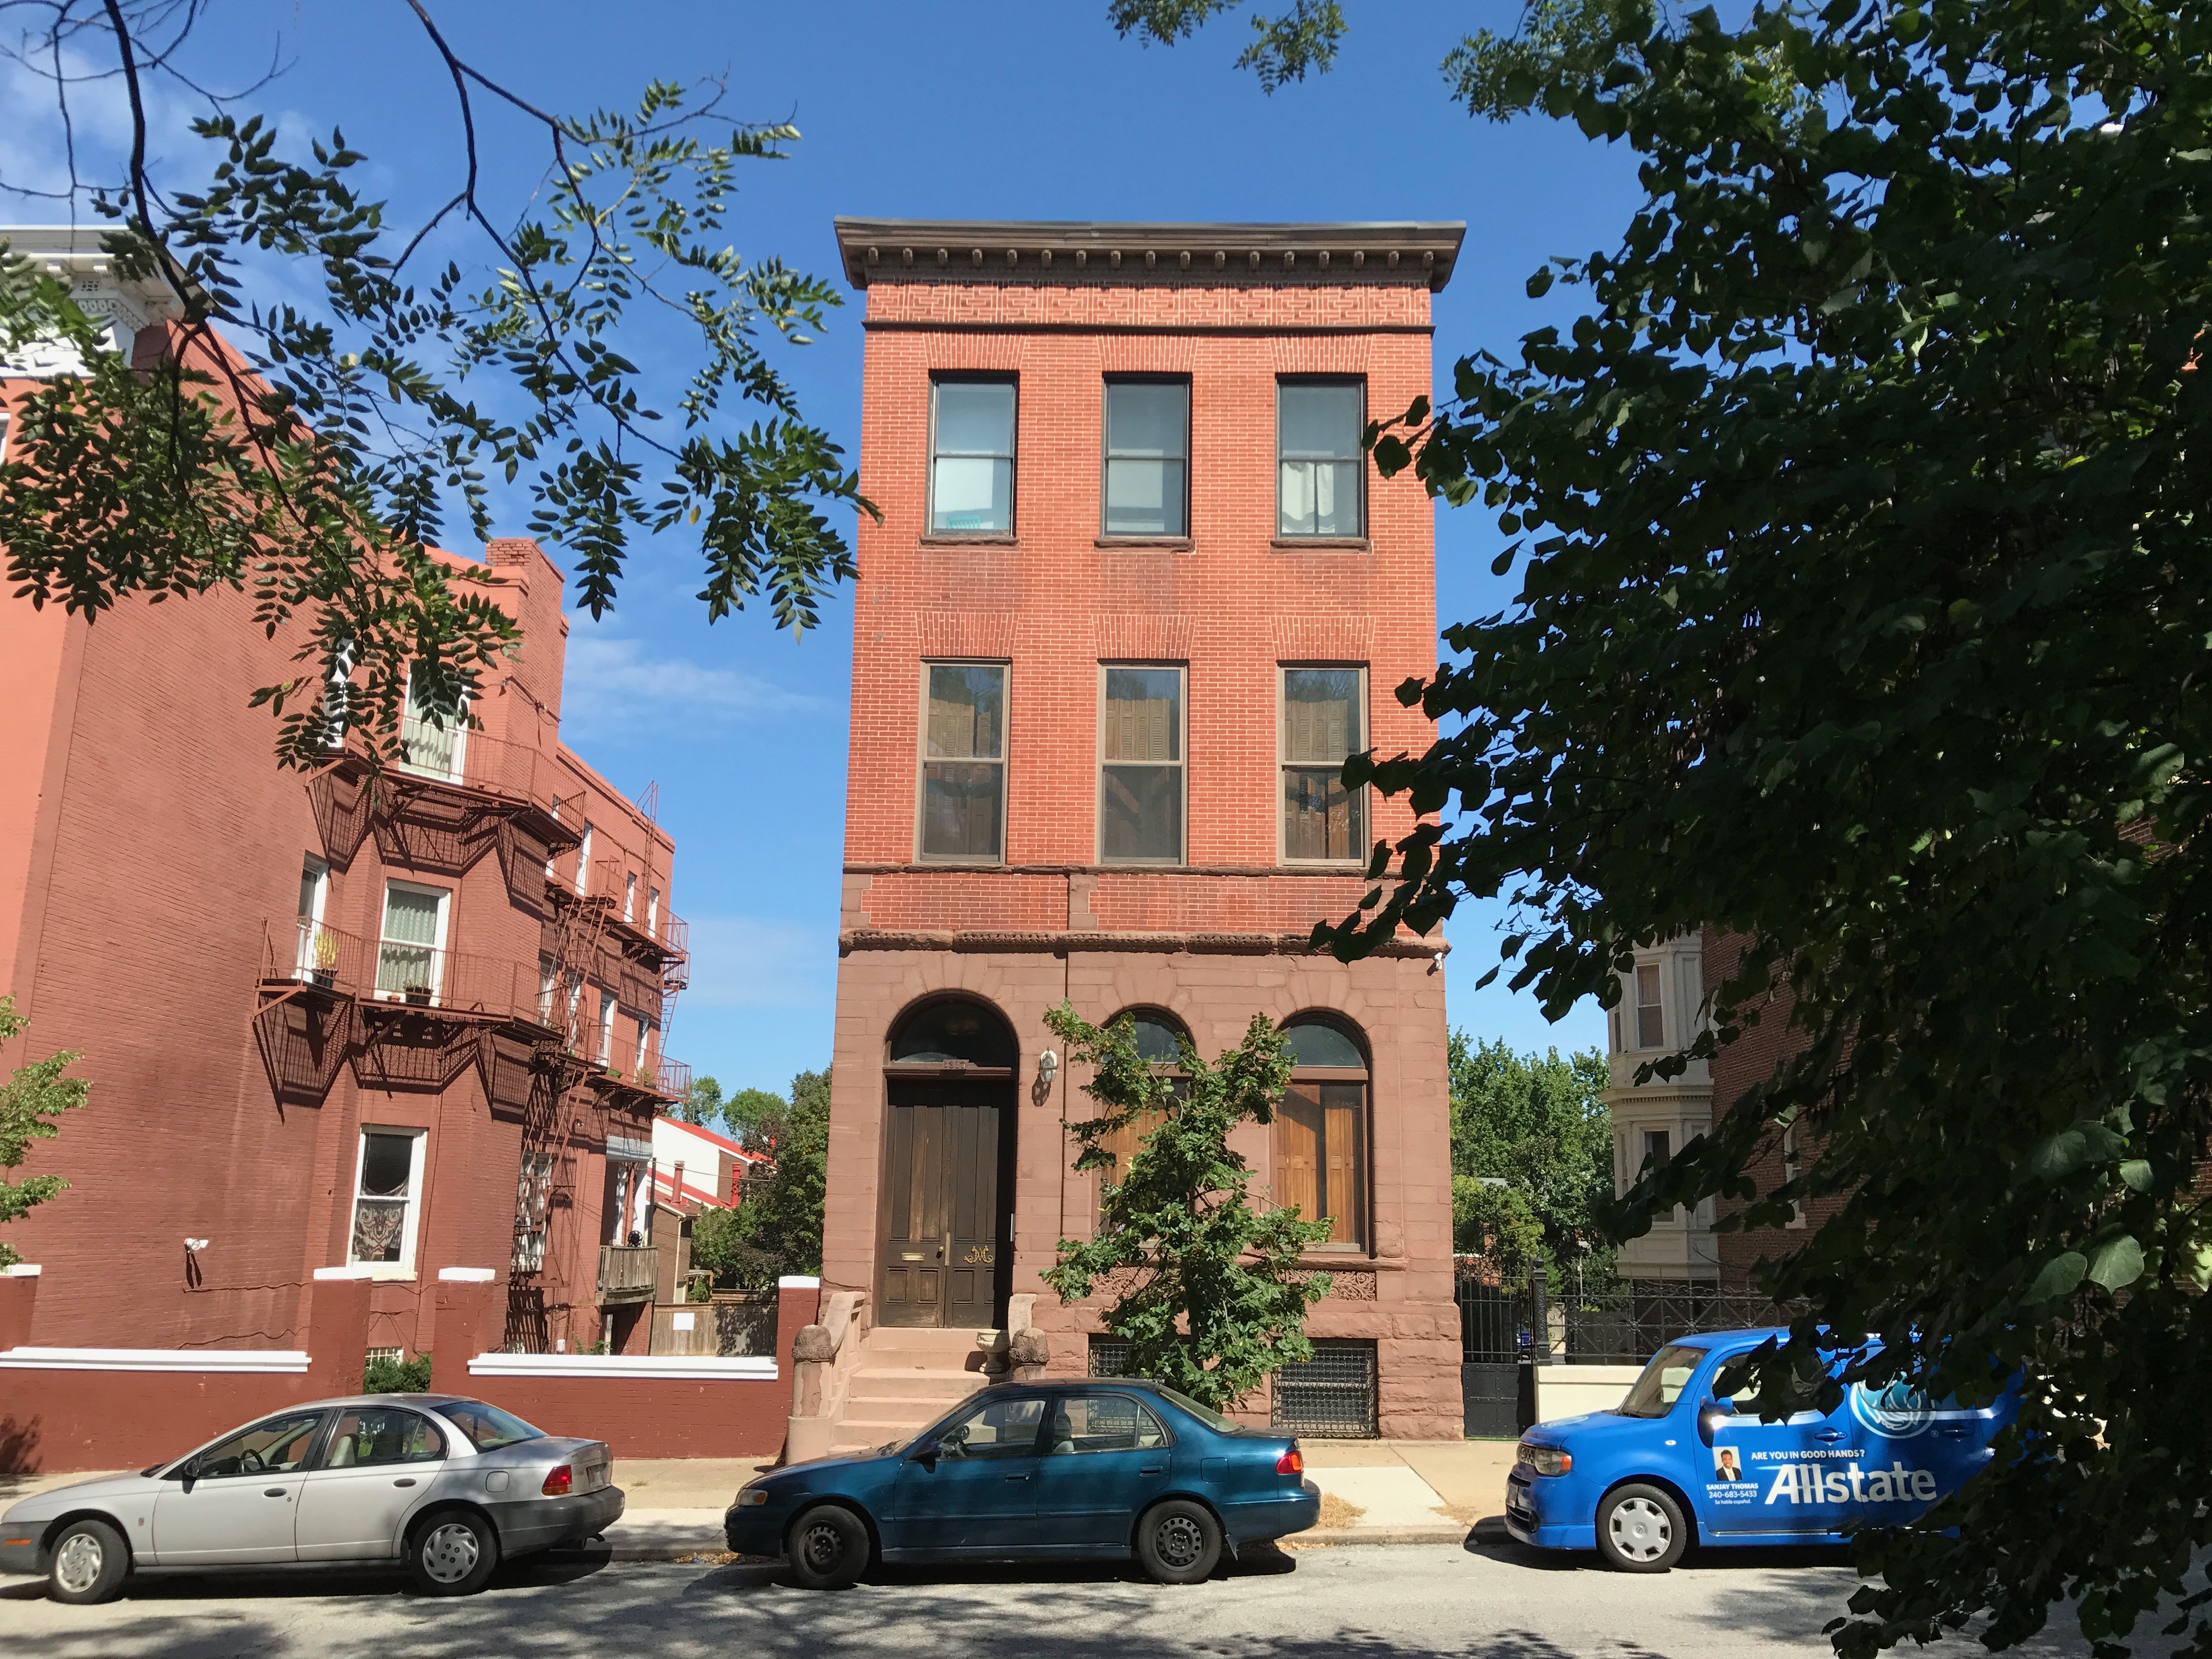 Rowhouse, 1317 Eutaw Place, Baltimore, MD 21217, Baltimore, Bolton Hill, Building, Car, HQ Photo